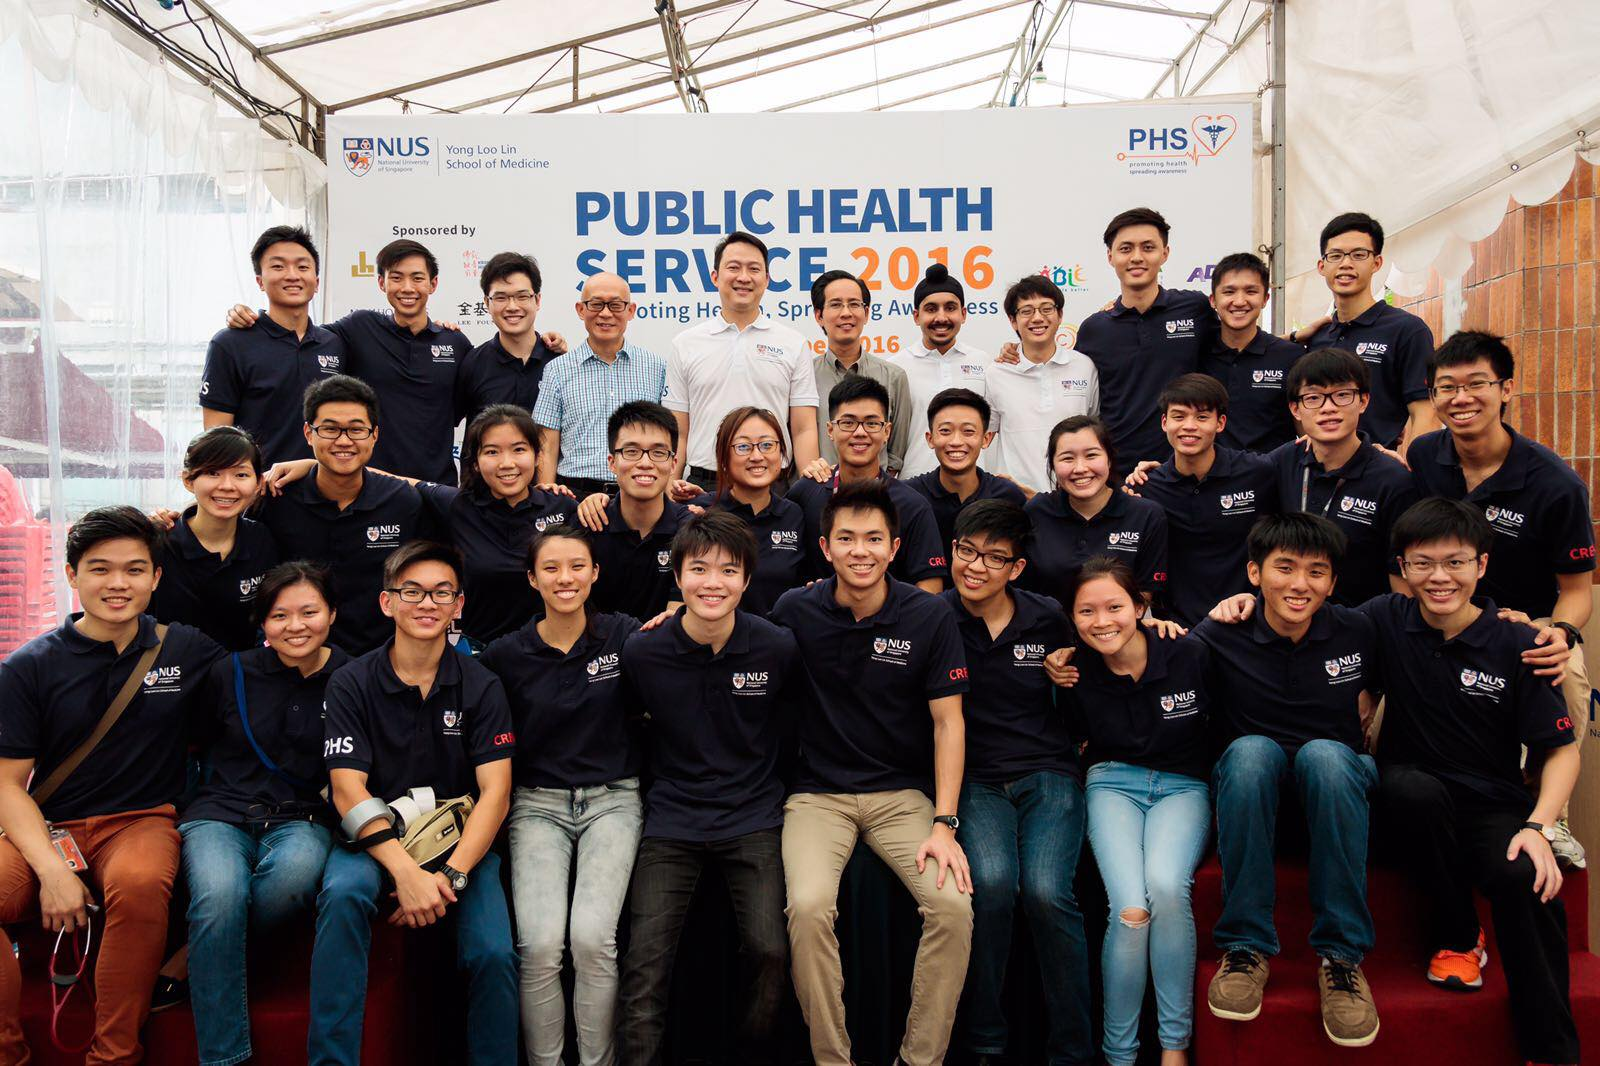 A big thank you to everyone who made PHS 2016 possible. We look forward to serving the community again in 2017.  Yours in service,   The 11th Executive Committee,  NUS Medical Society Public Health Service